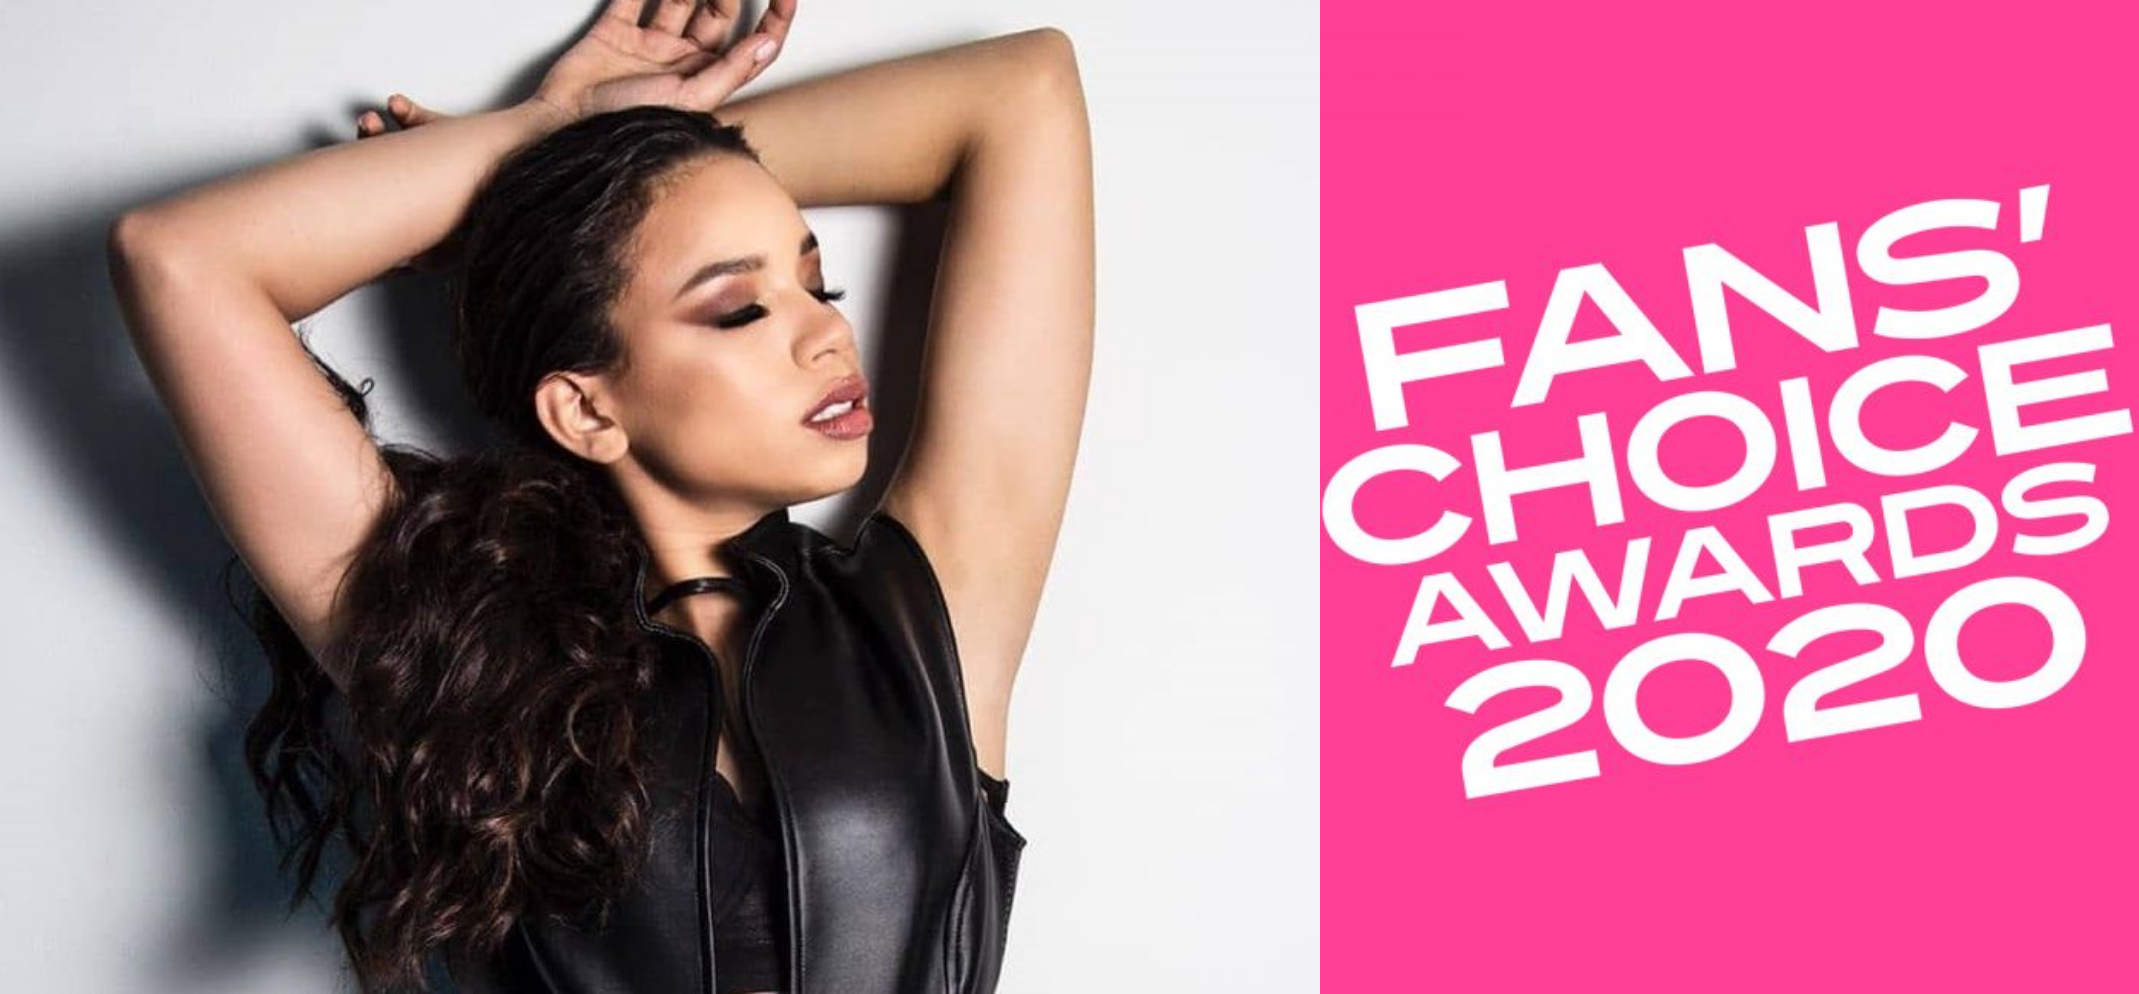 angie flores fans choice awand